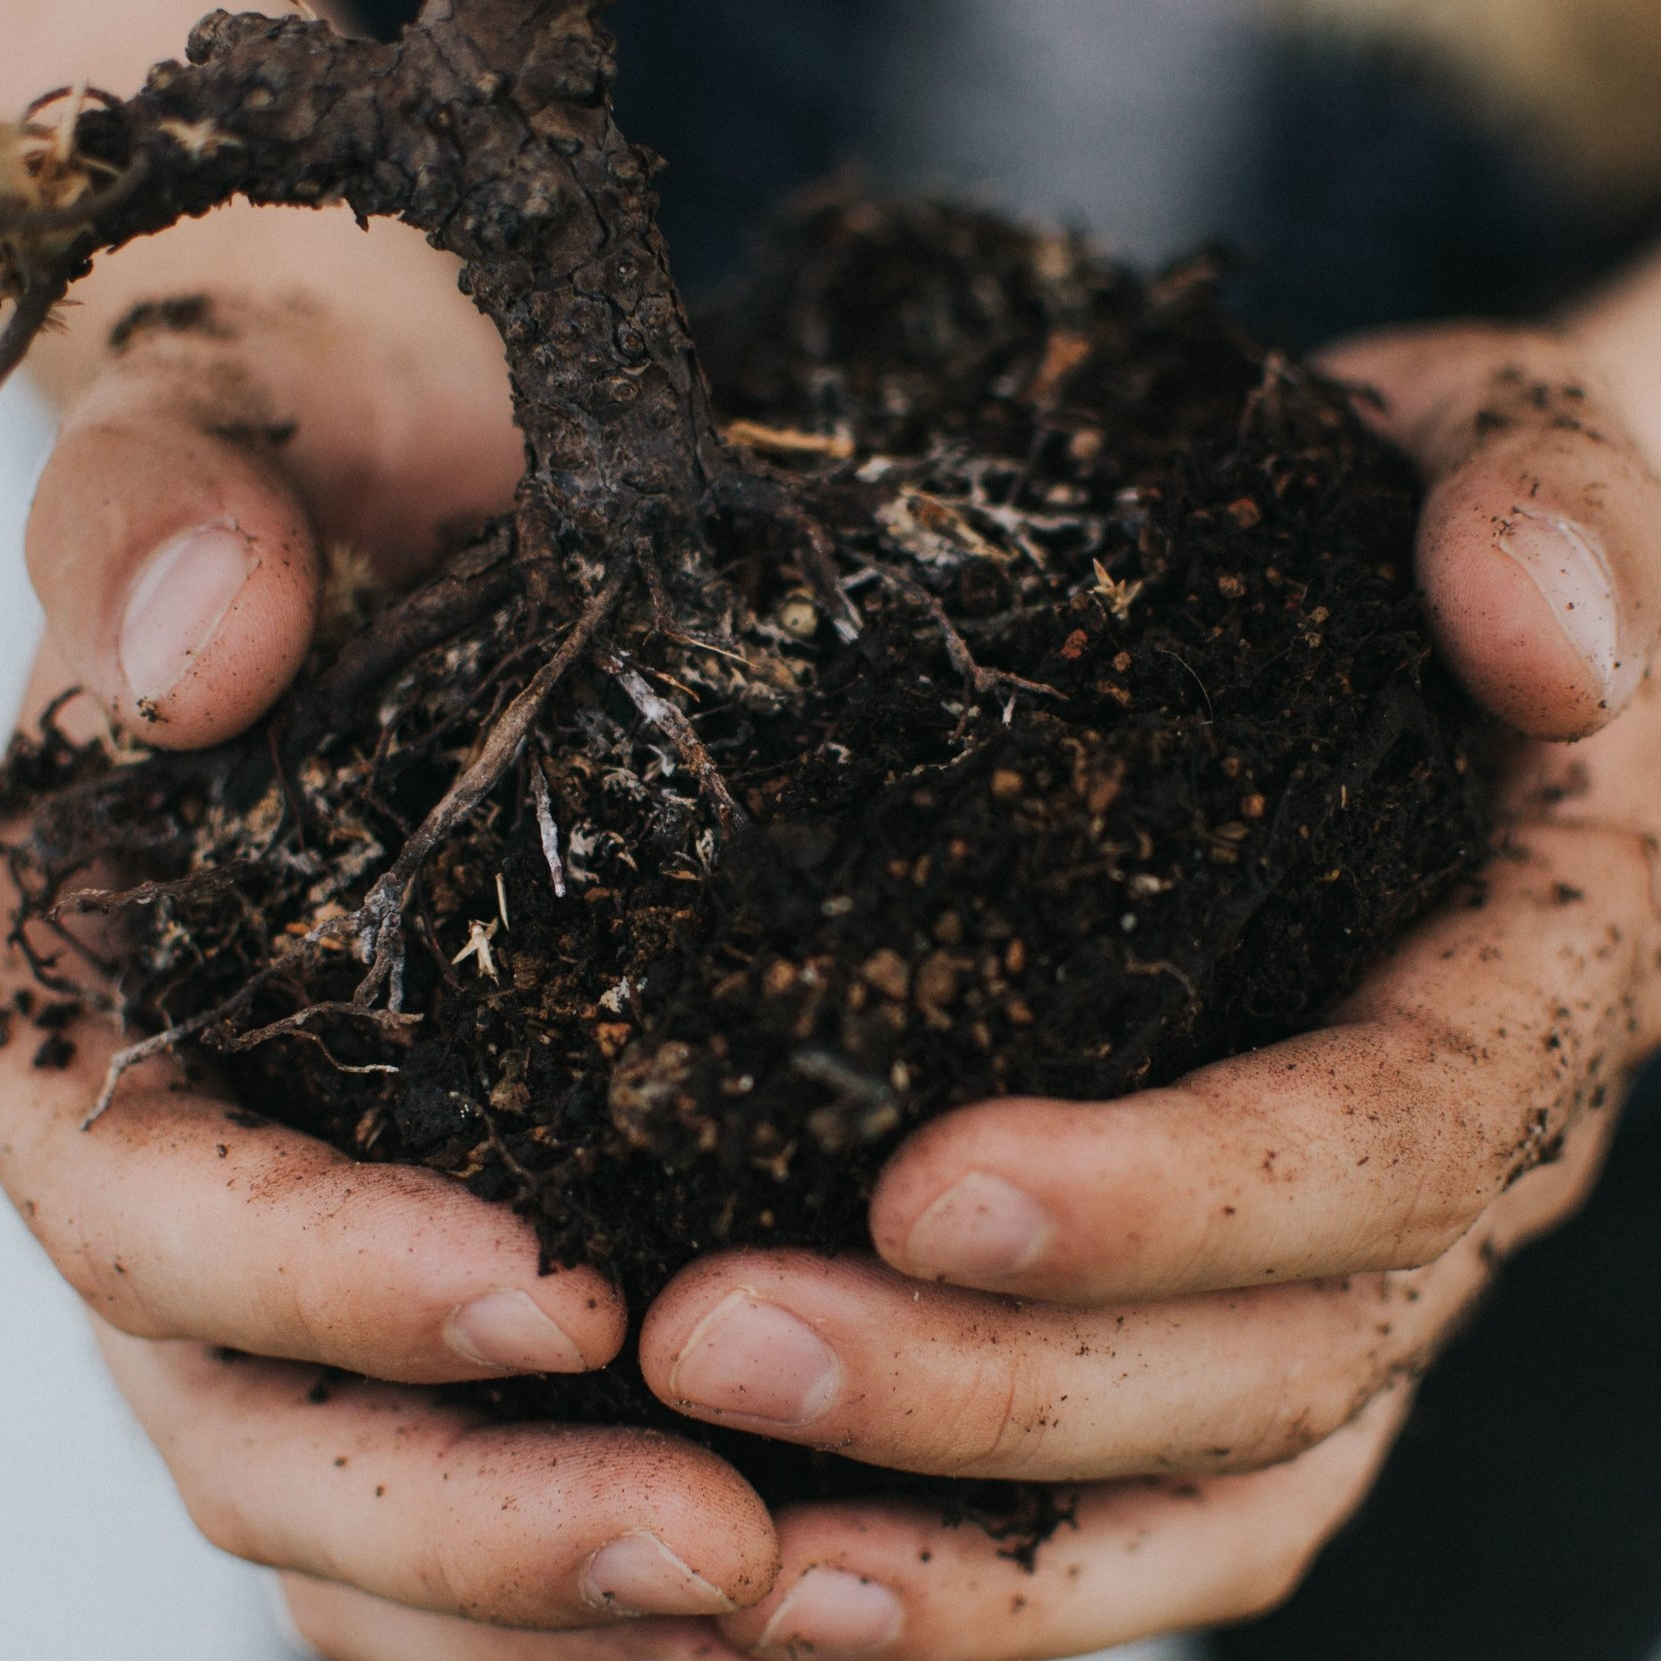 Compost (Noun): - Decayed organic material, such as of leaves and grass, used to improve soil especially for growing crops.